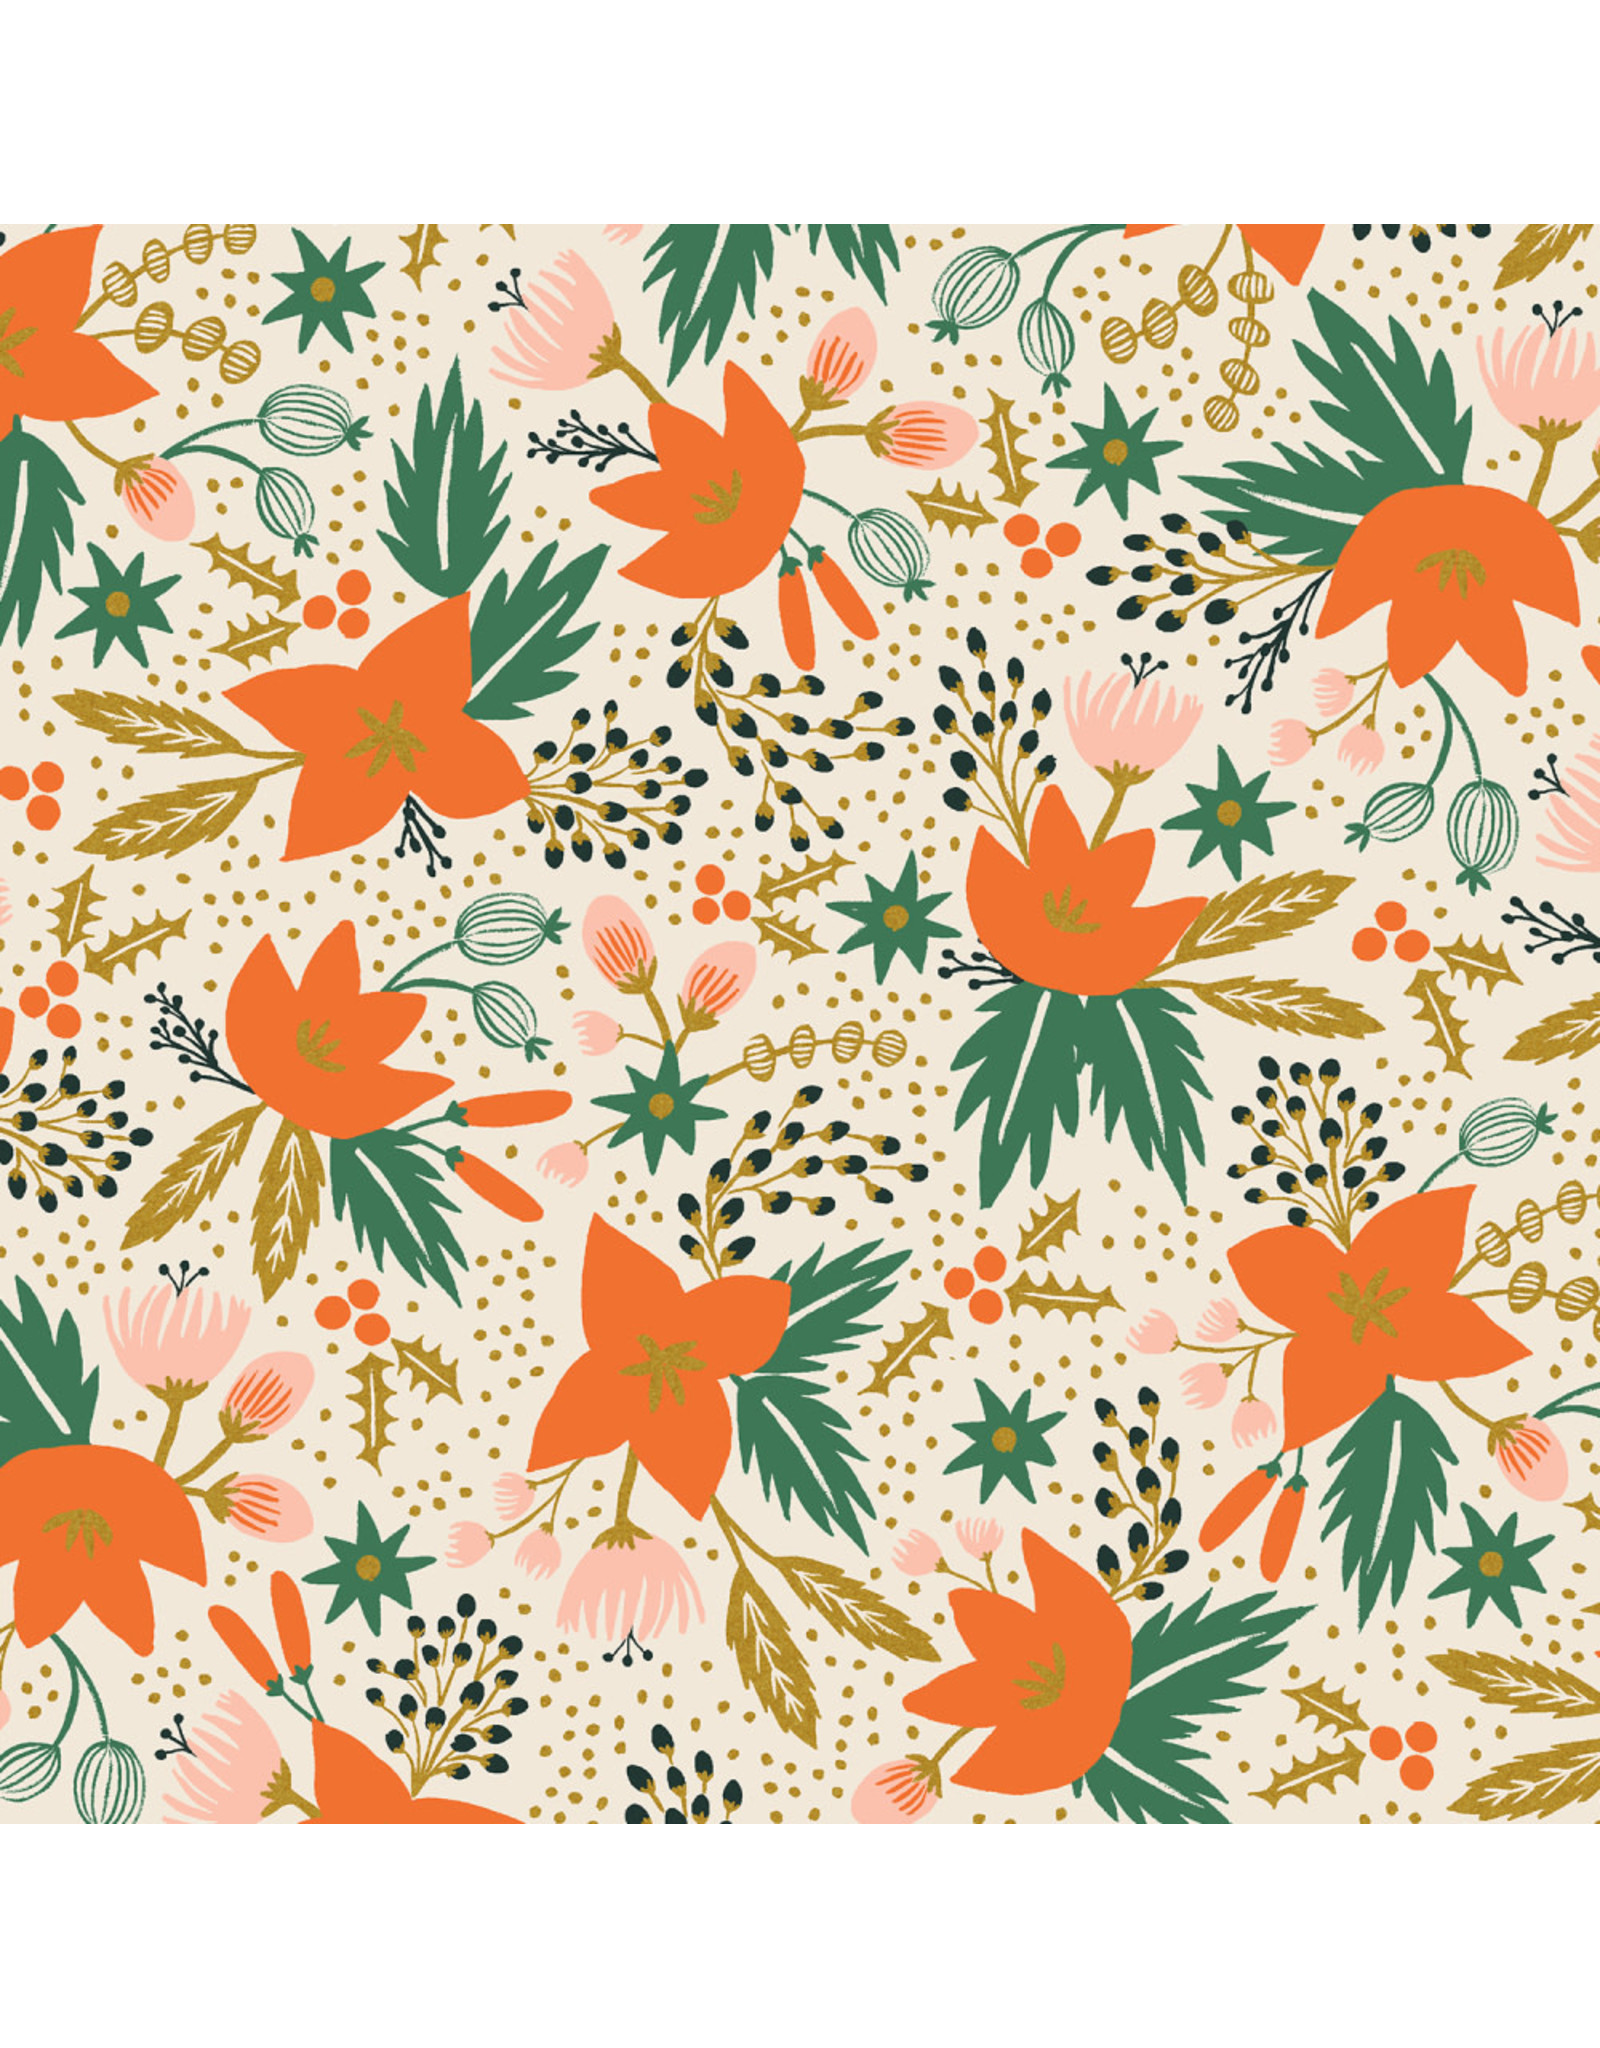 Rifle Paper Co. Holiday Classics, Poinsettia in Cream with Metallic, Fabric Half-Yards